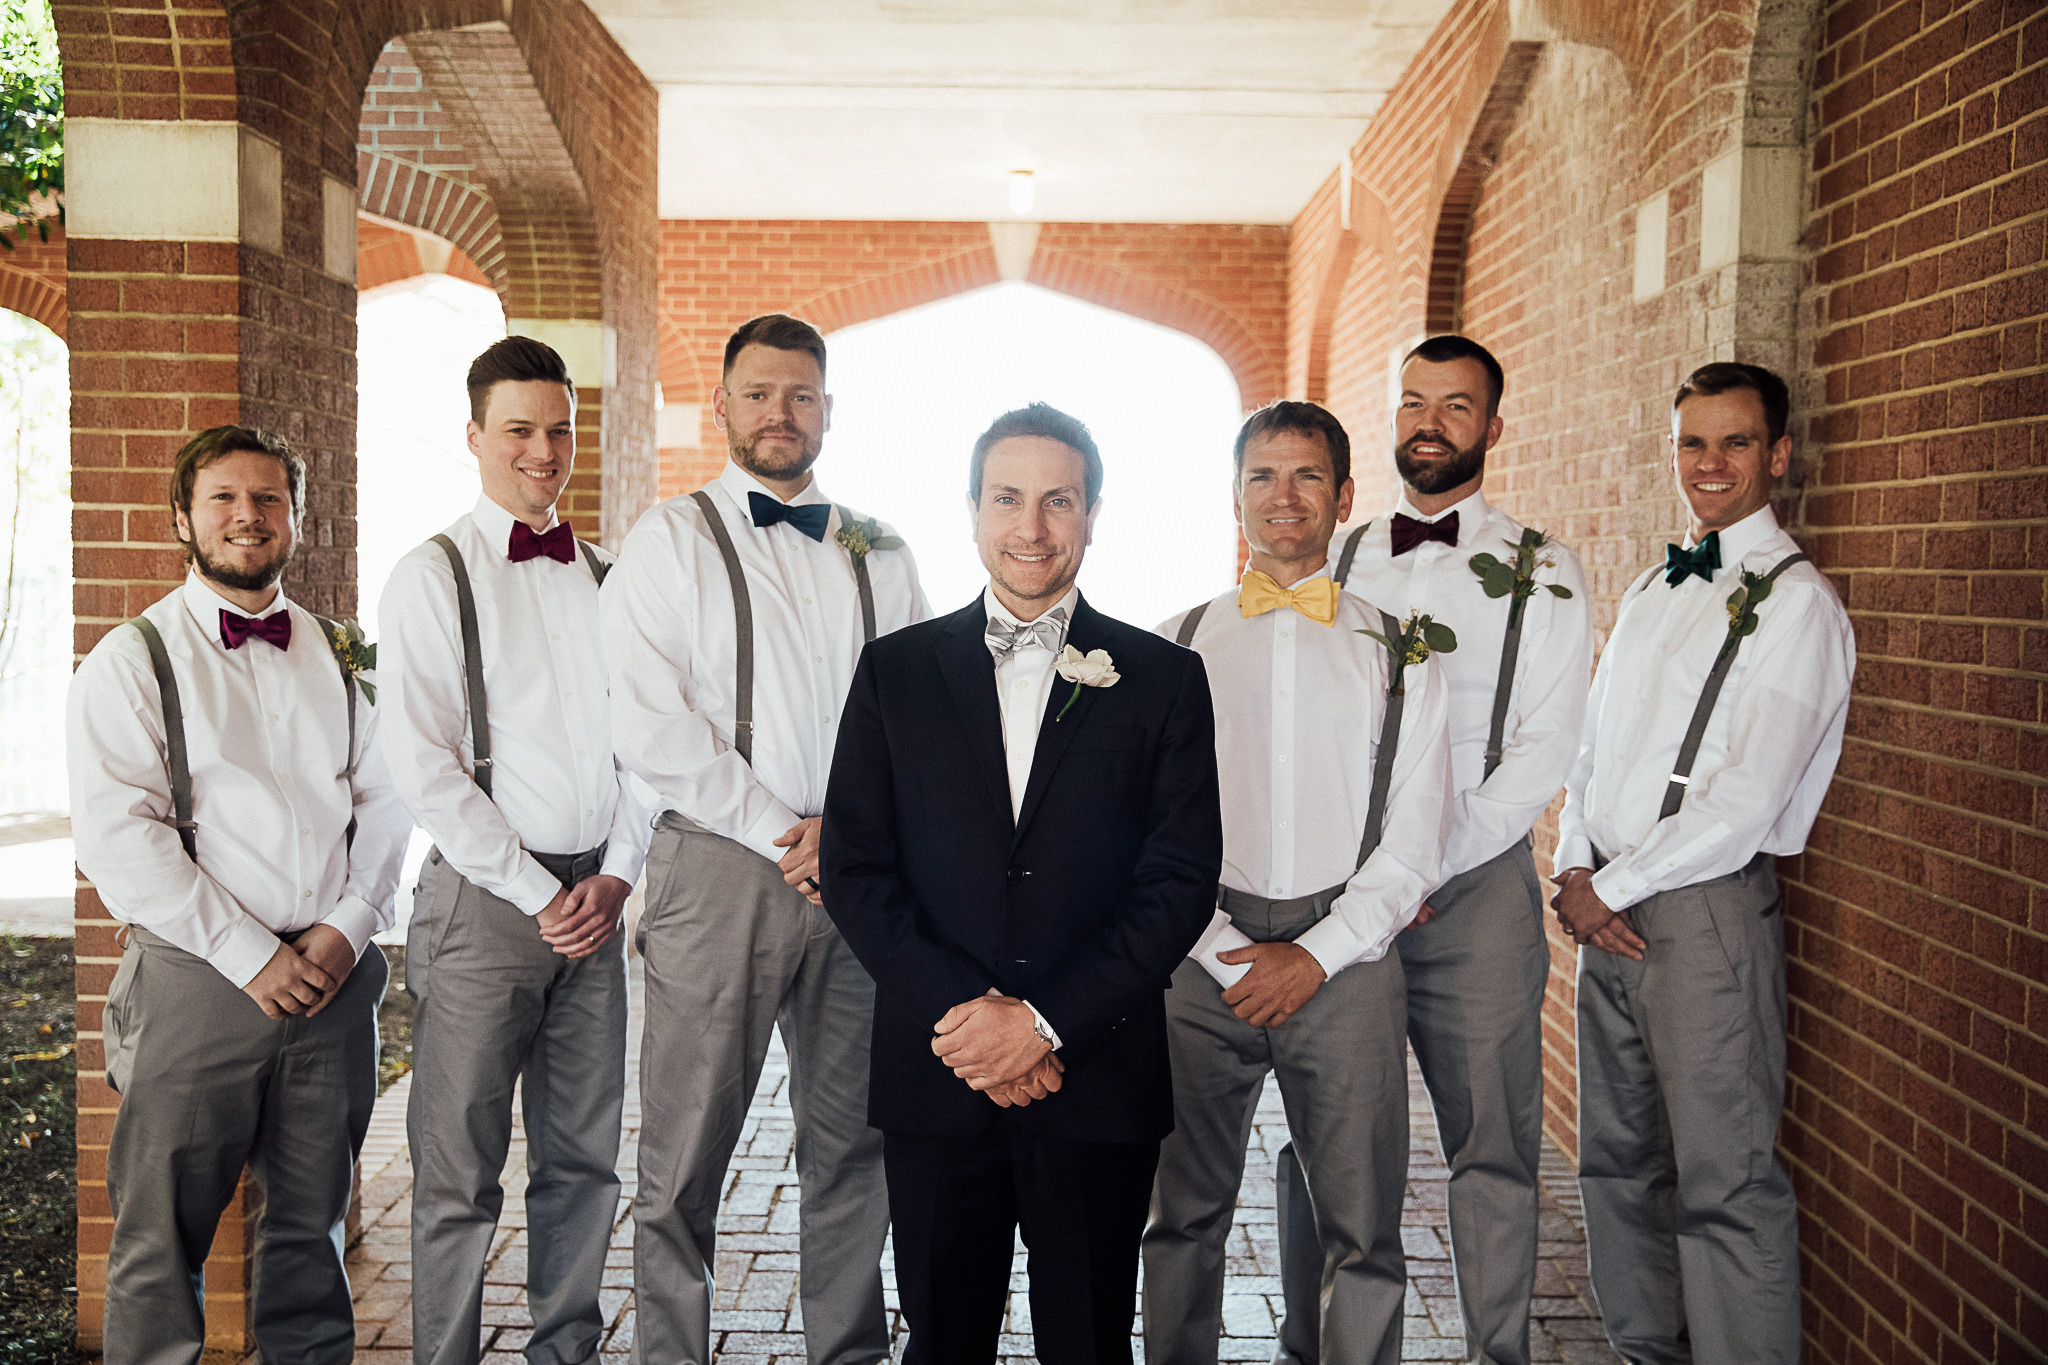 chattanooga-wedding-photographers-thewarmtharoundyou-waterhouse-pavilion-patten-chapel-wedding-sam-dusty (14 of 99).jpg